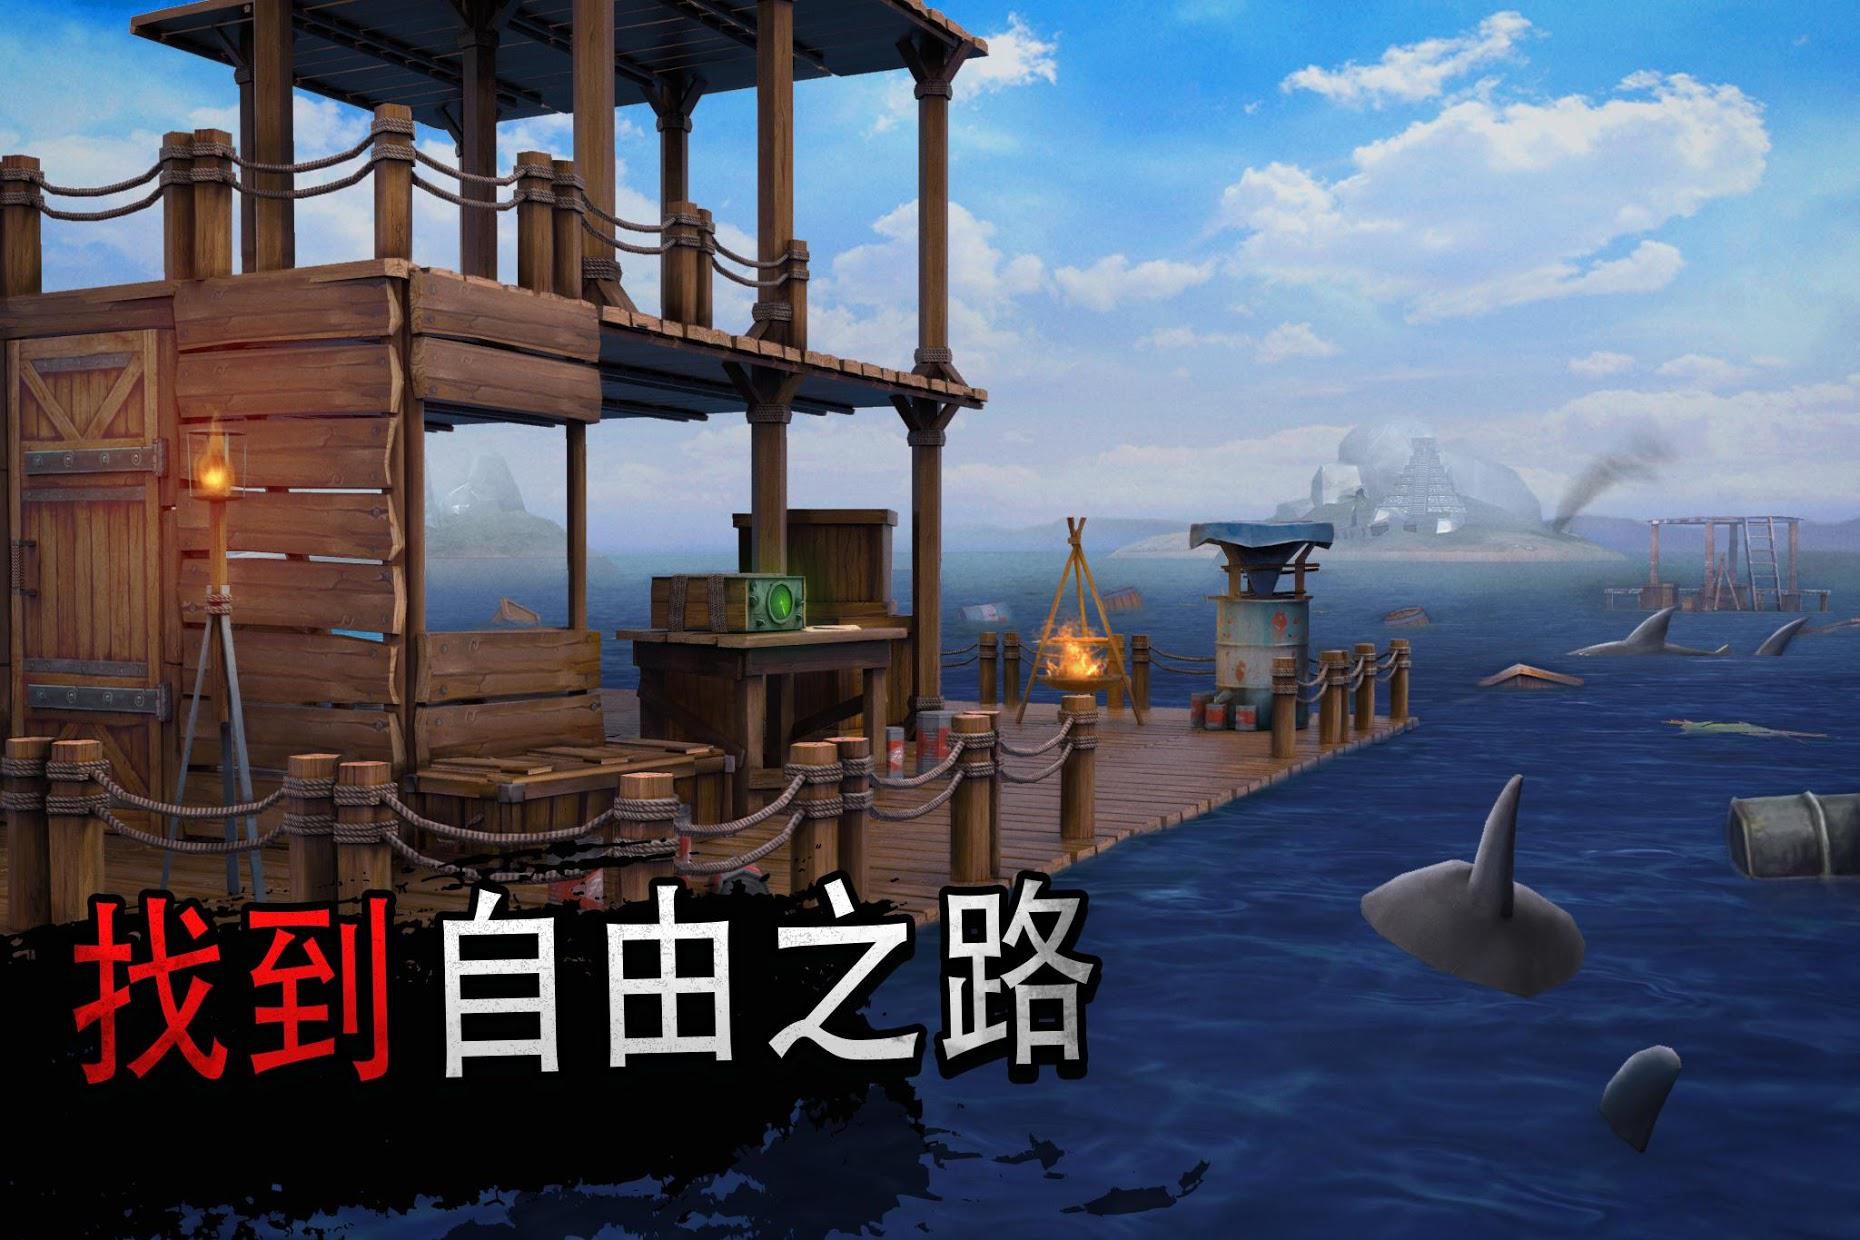 筏子上的生存: Survival on Raft - Ocean Nomad 游戏截图3